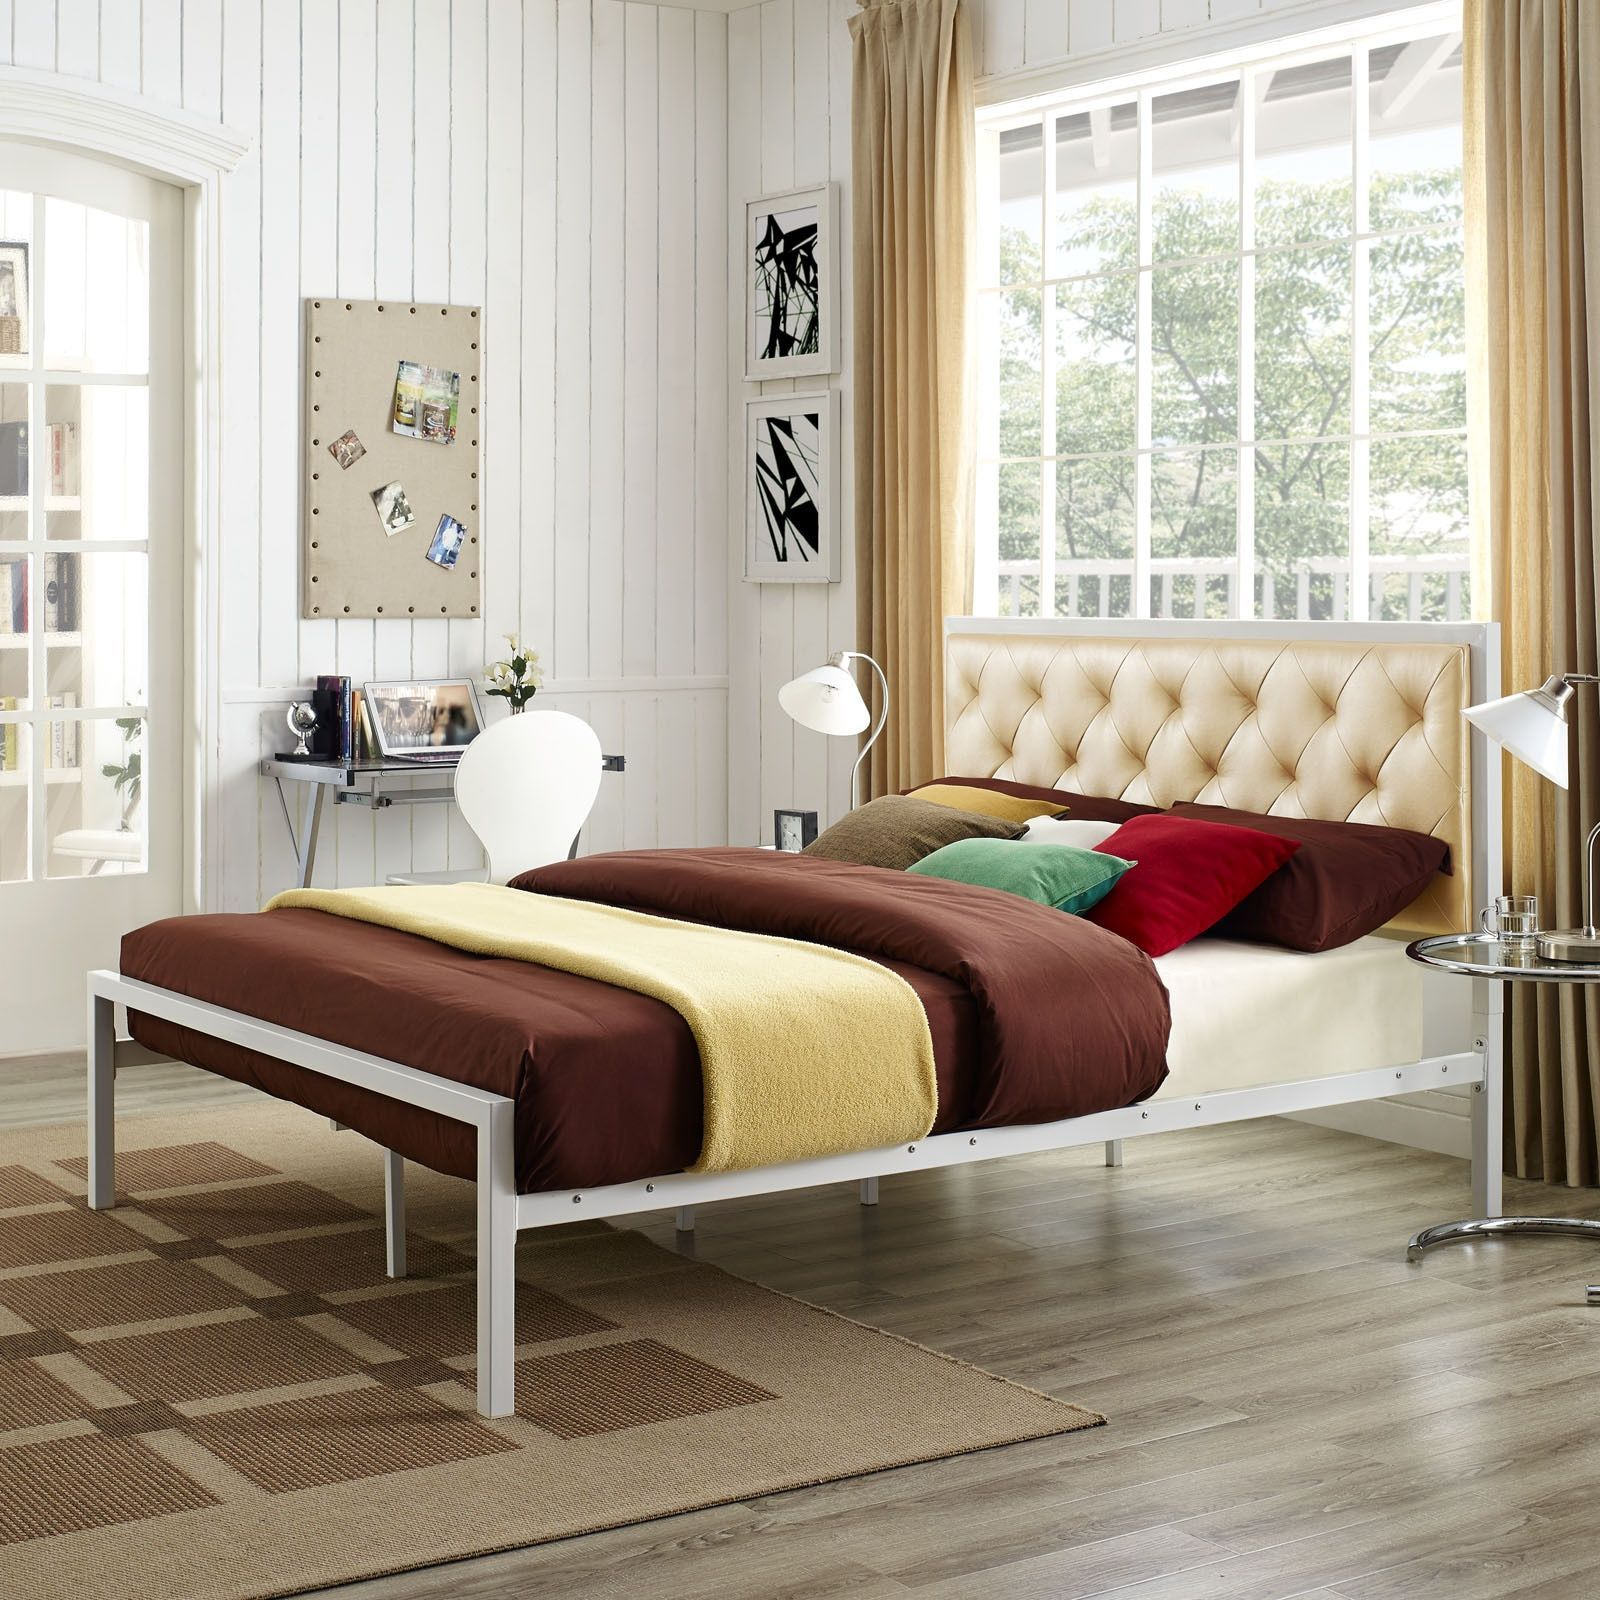 modway min gold vinyl platform bed frame with 10 inch queen size